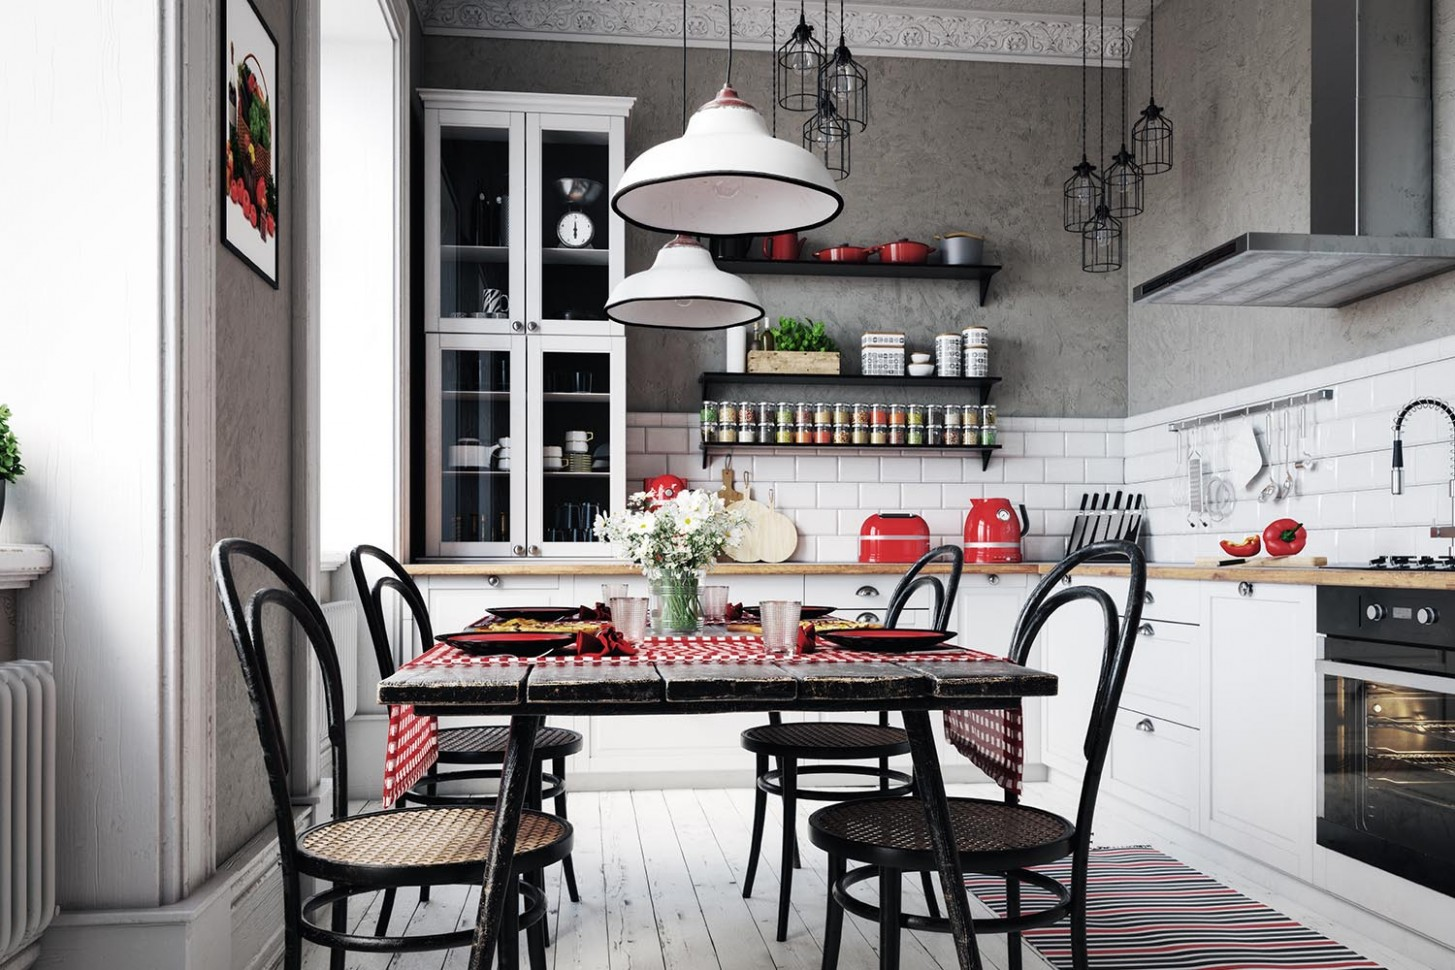 Small Kitchen Design: Best Ideas & Layouts for Small Kitchens  - Apartment Kitchen Design Sydney